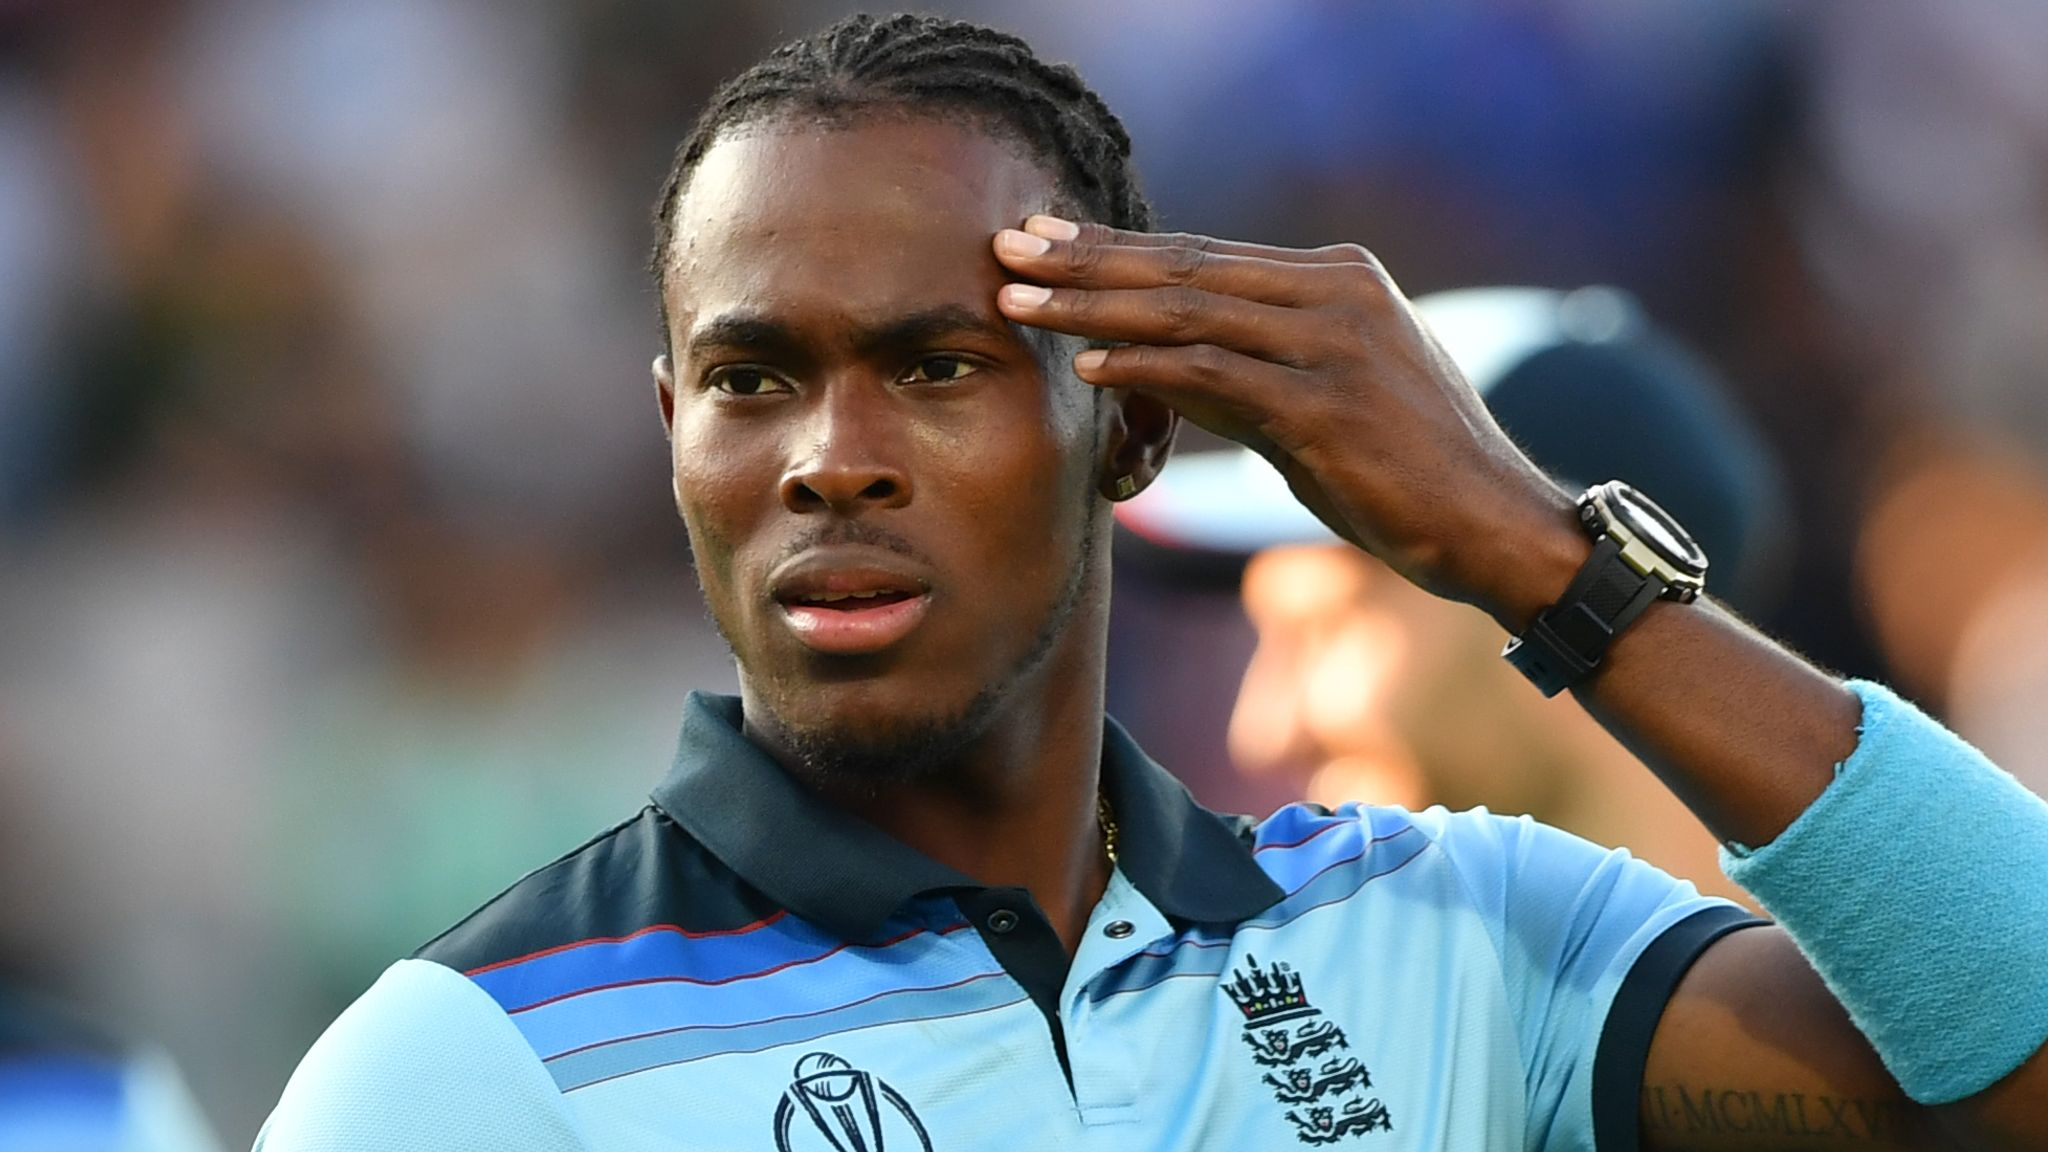 Jofra Archer finds Cricket World Cup medal after losing it during house move | Cricket News | Sky Sports